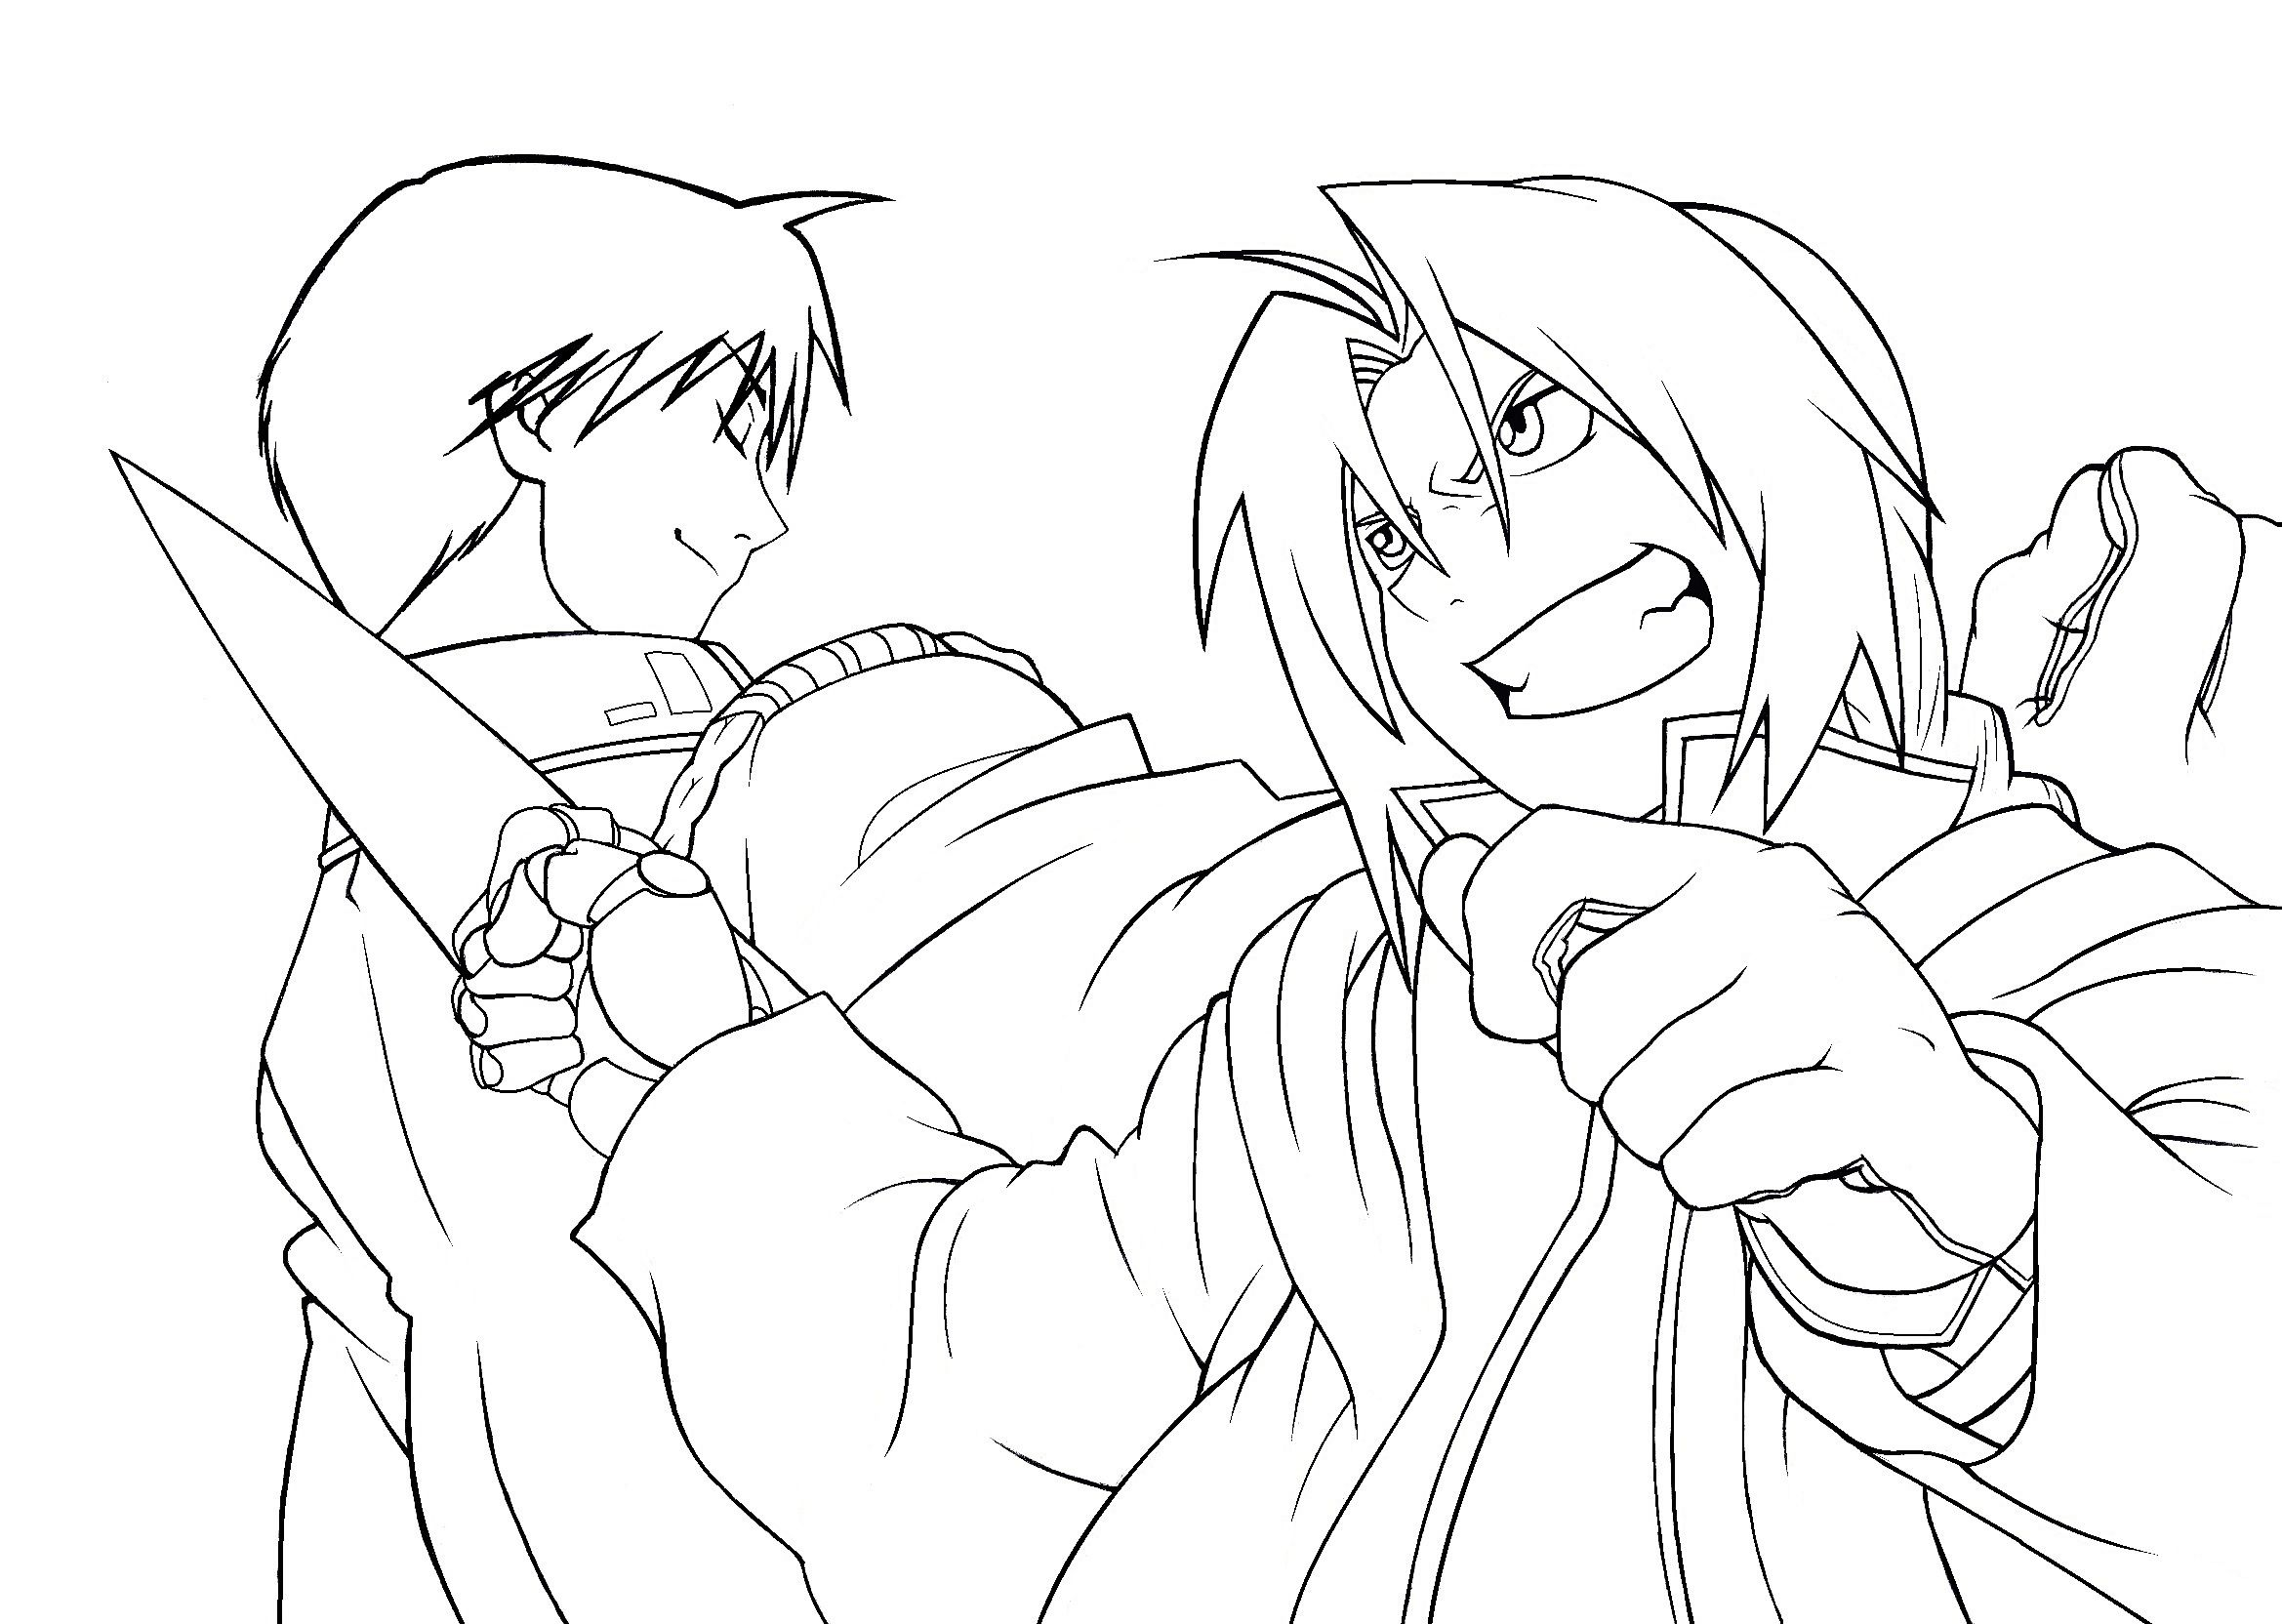 Edward Elric And Roy Mustang Lineart By Patriciamuacmuac Edward Elric Roy Mustang Fullmetal Alchemist